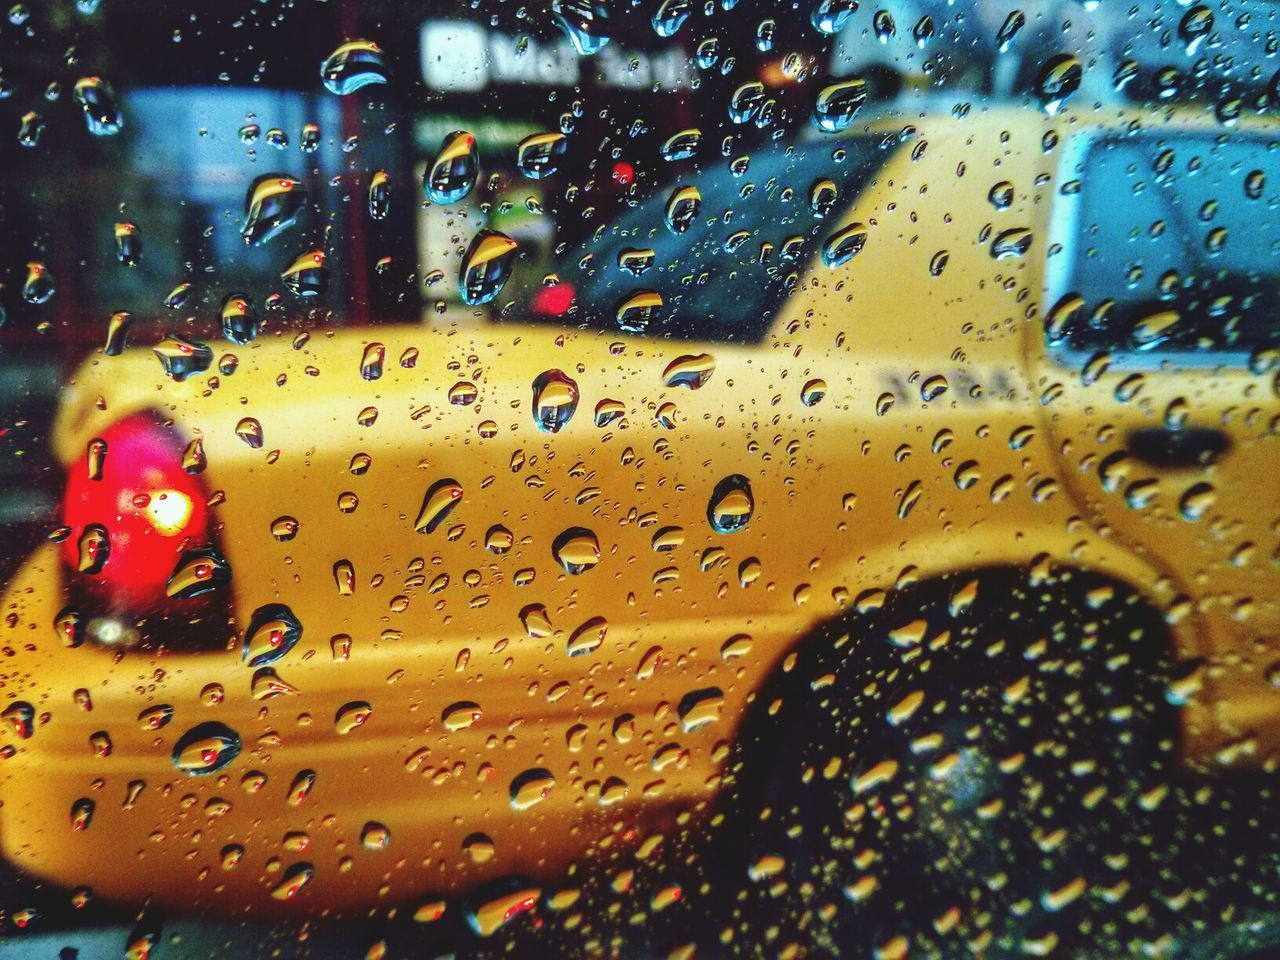 View of yellow car across wet glass